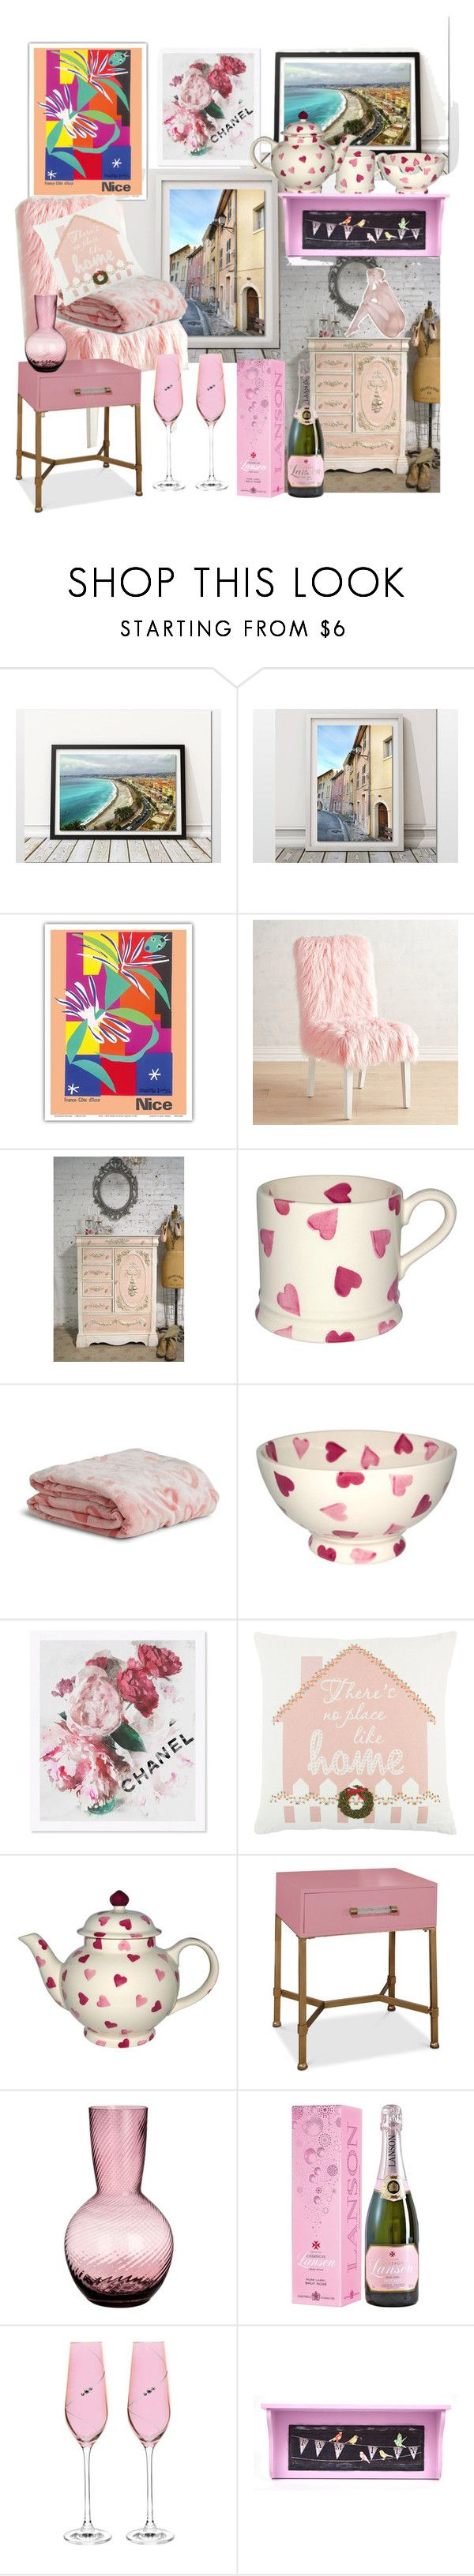 """""""La Maison en Rose"""" by alexxa-b ❤ liked on Polyvore featuring interior, interiors, interior design, home, home decor, interior decorating, Pier 1 Imports, Vera Bradley, Oliver Gal Artist Co. and Rizzy Home"""